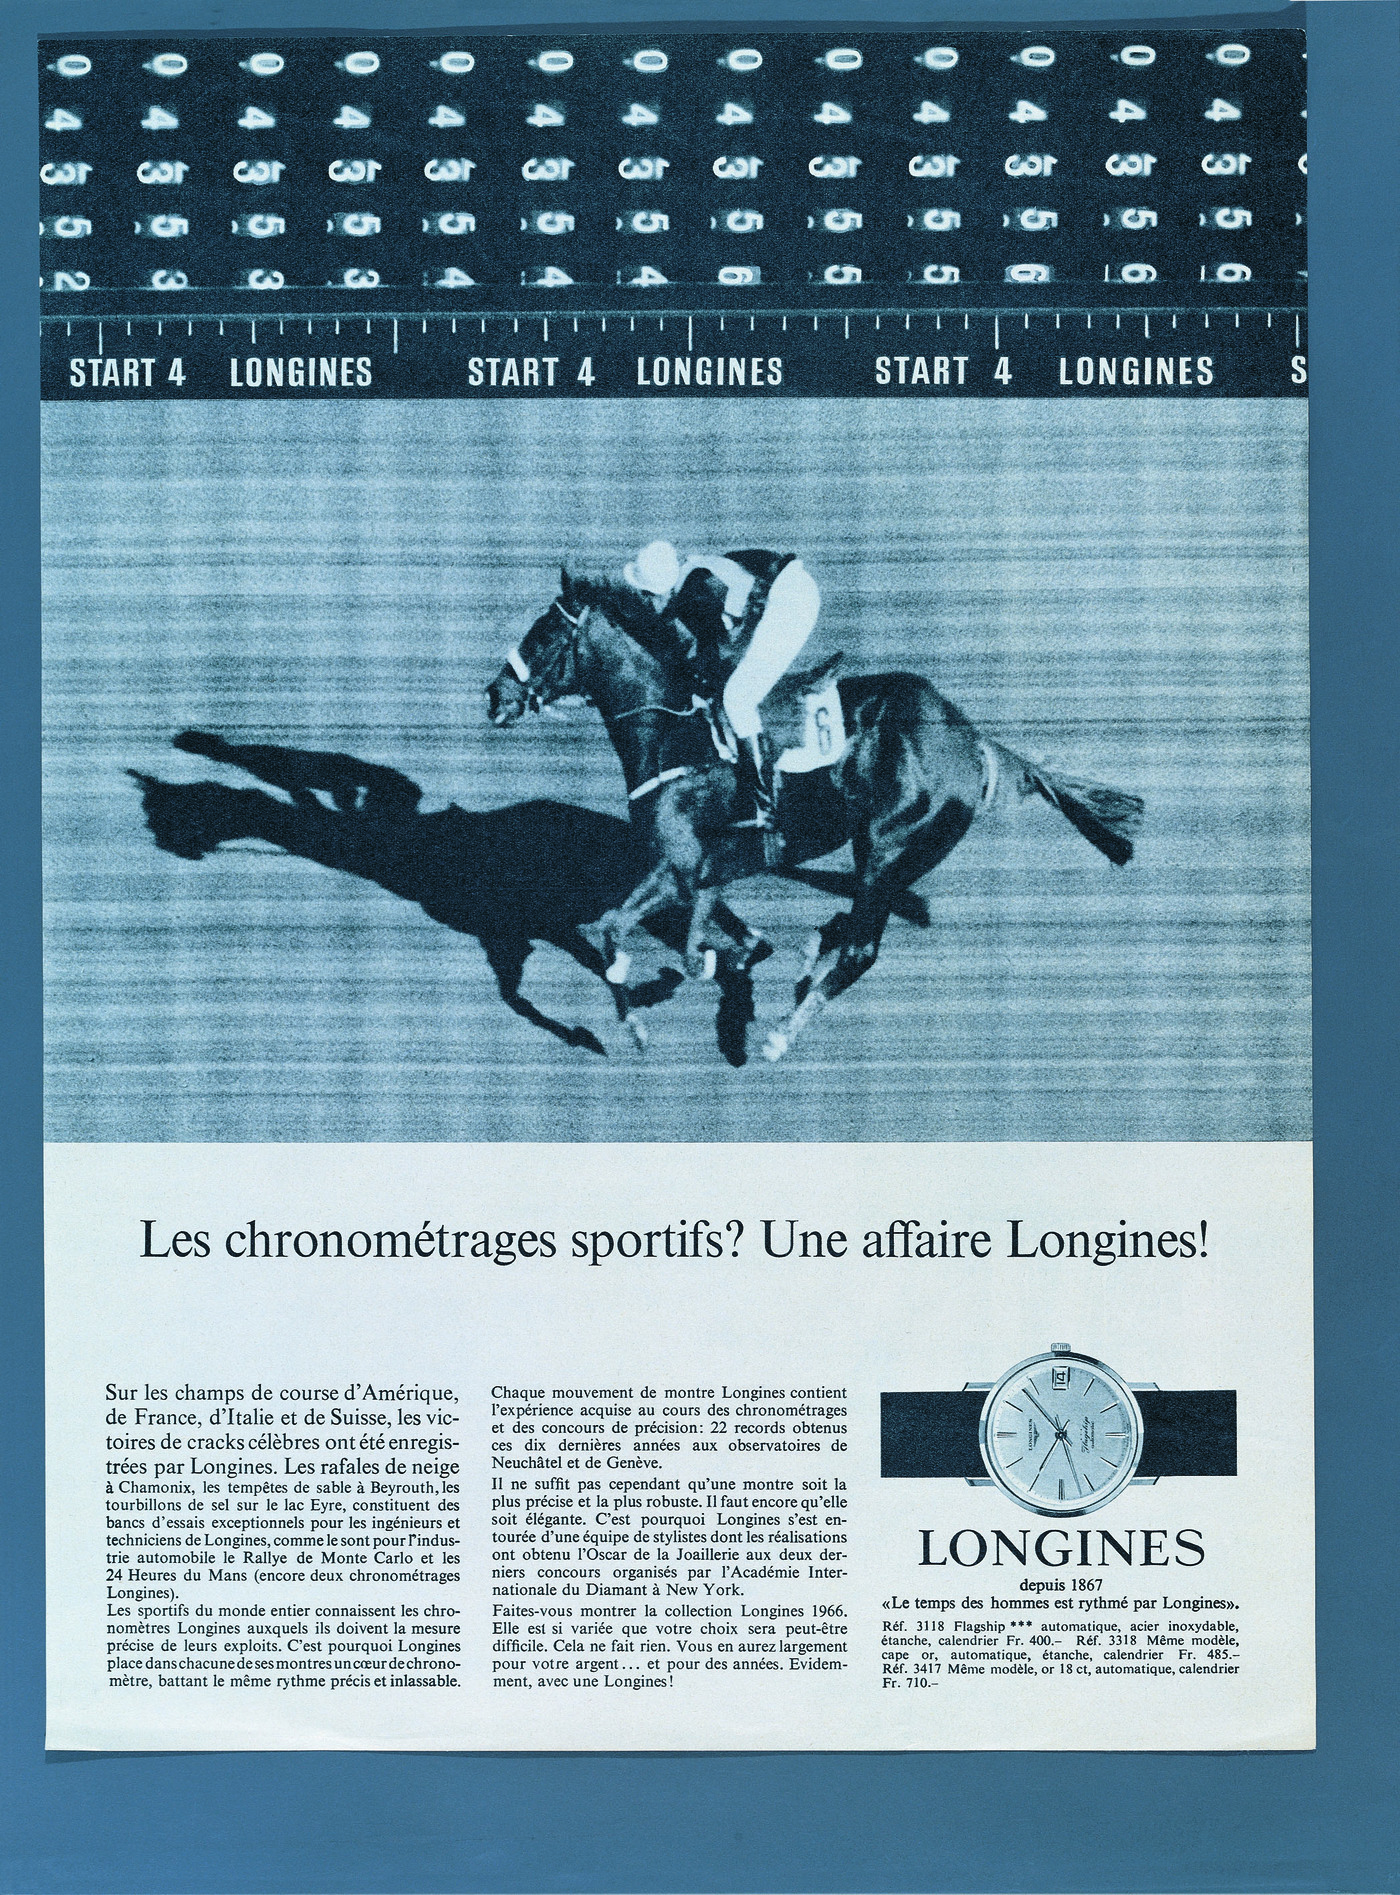 Longines Flat Racing Event: Longines and the Prix de Diane promoting the art of elegance 5